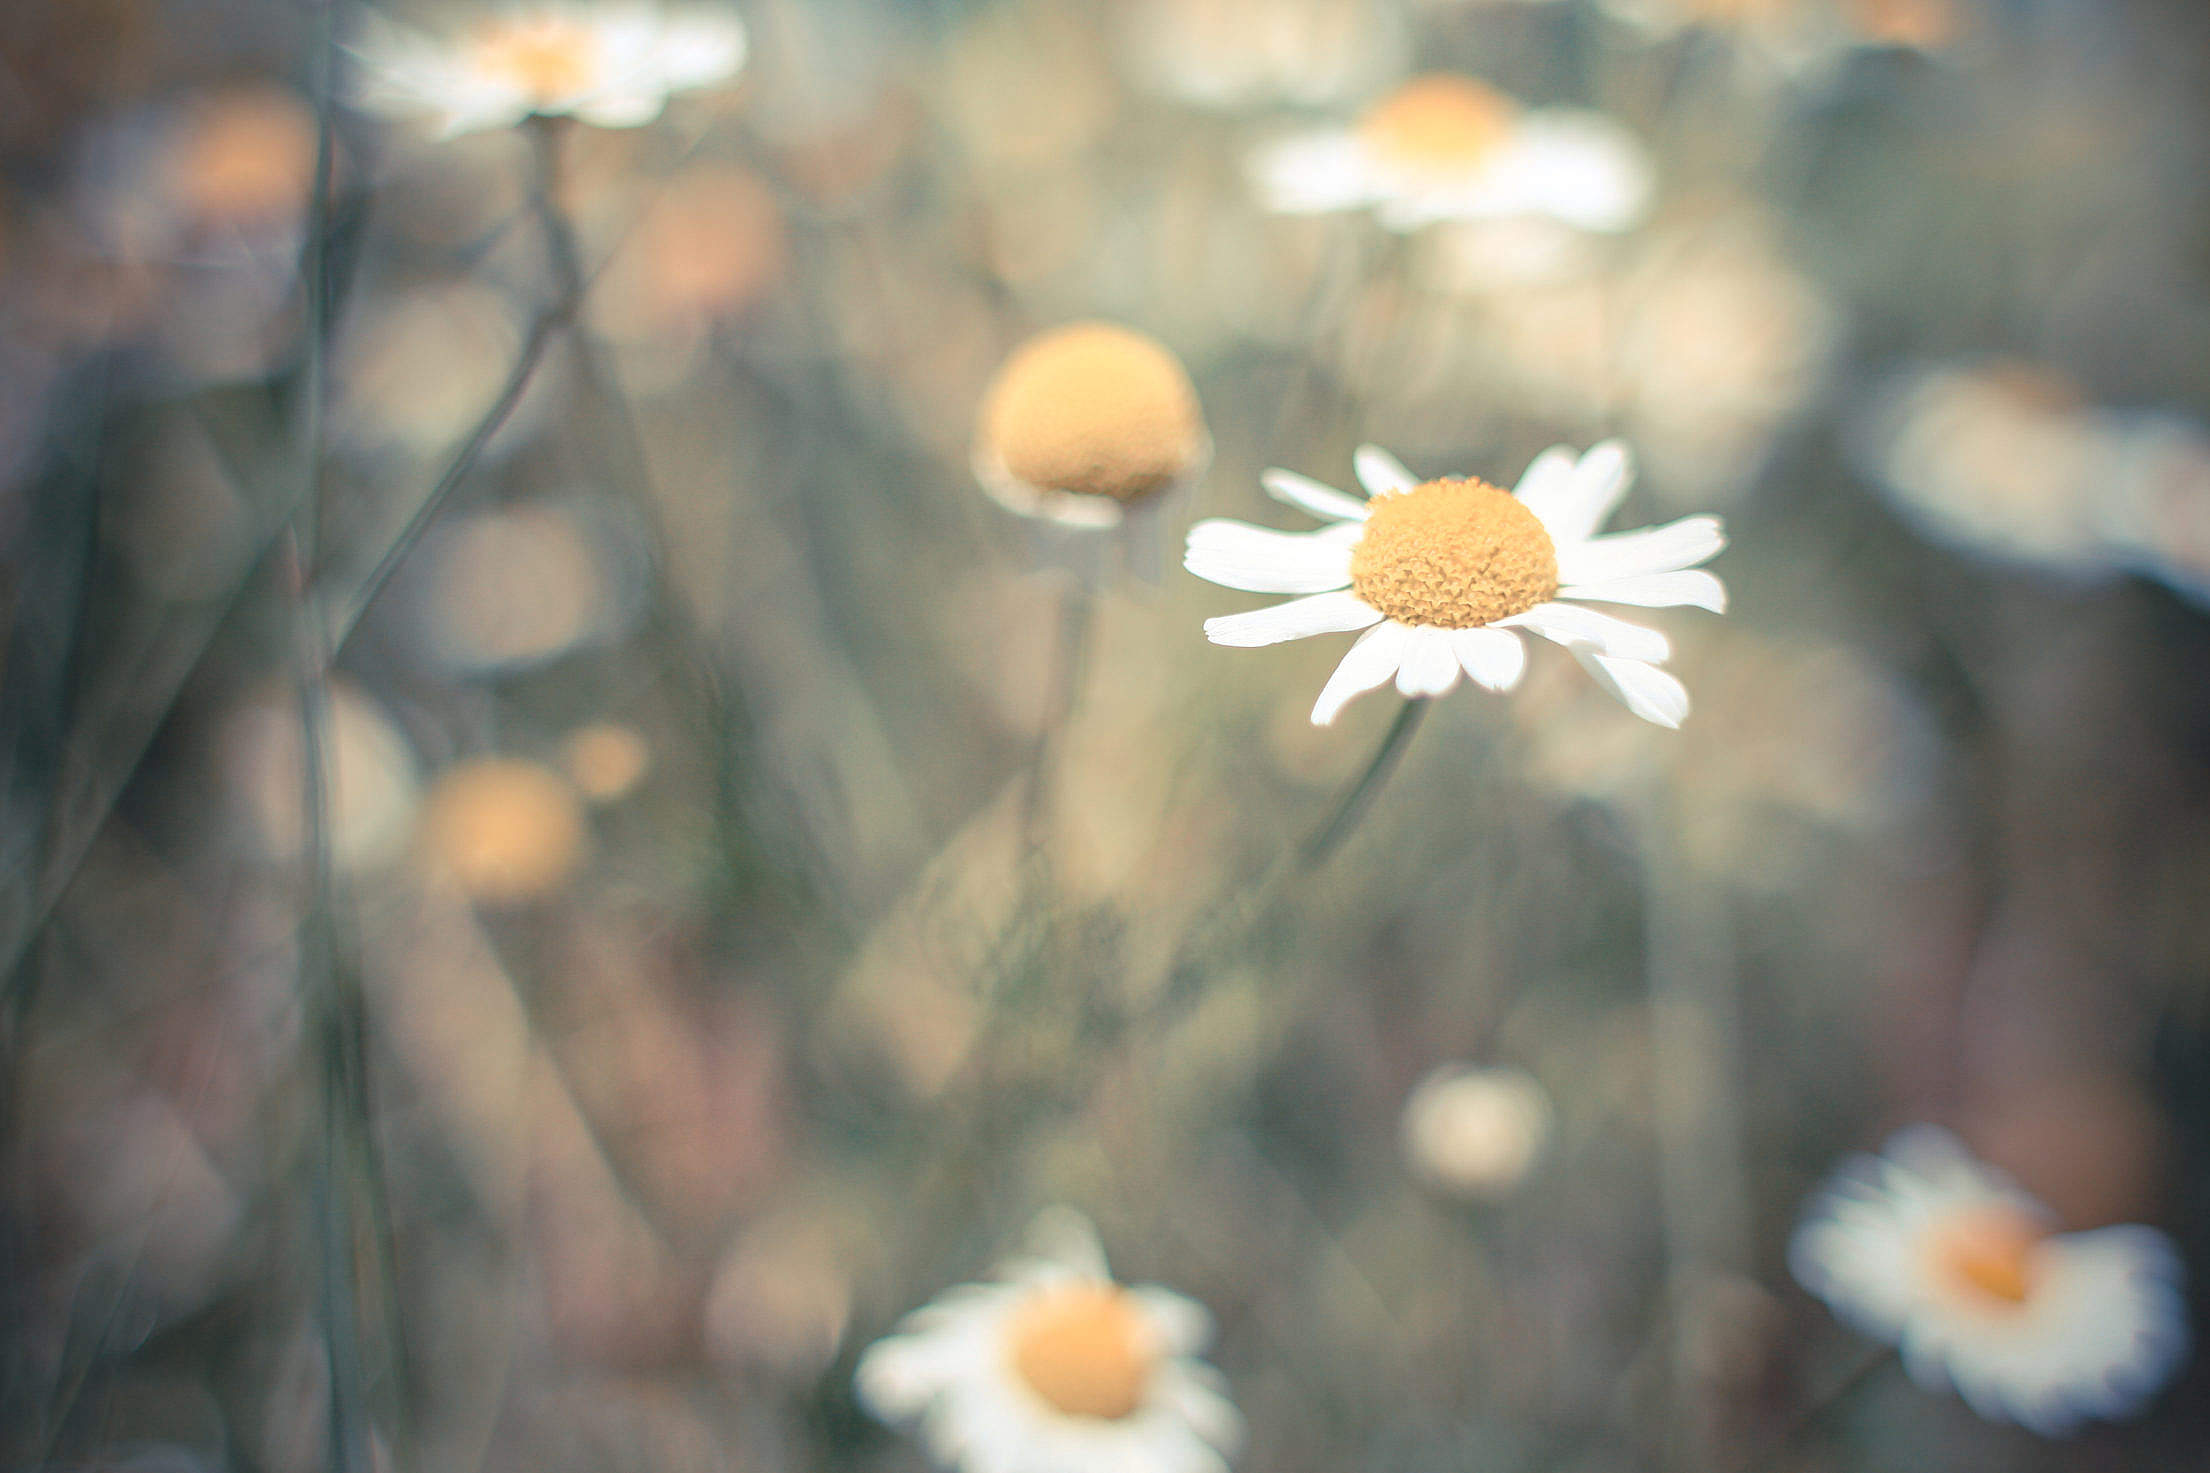 Lonely Daisy Free Stock Photo